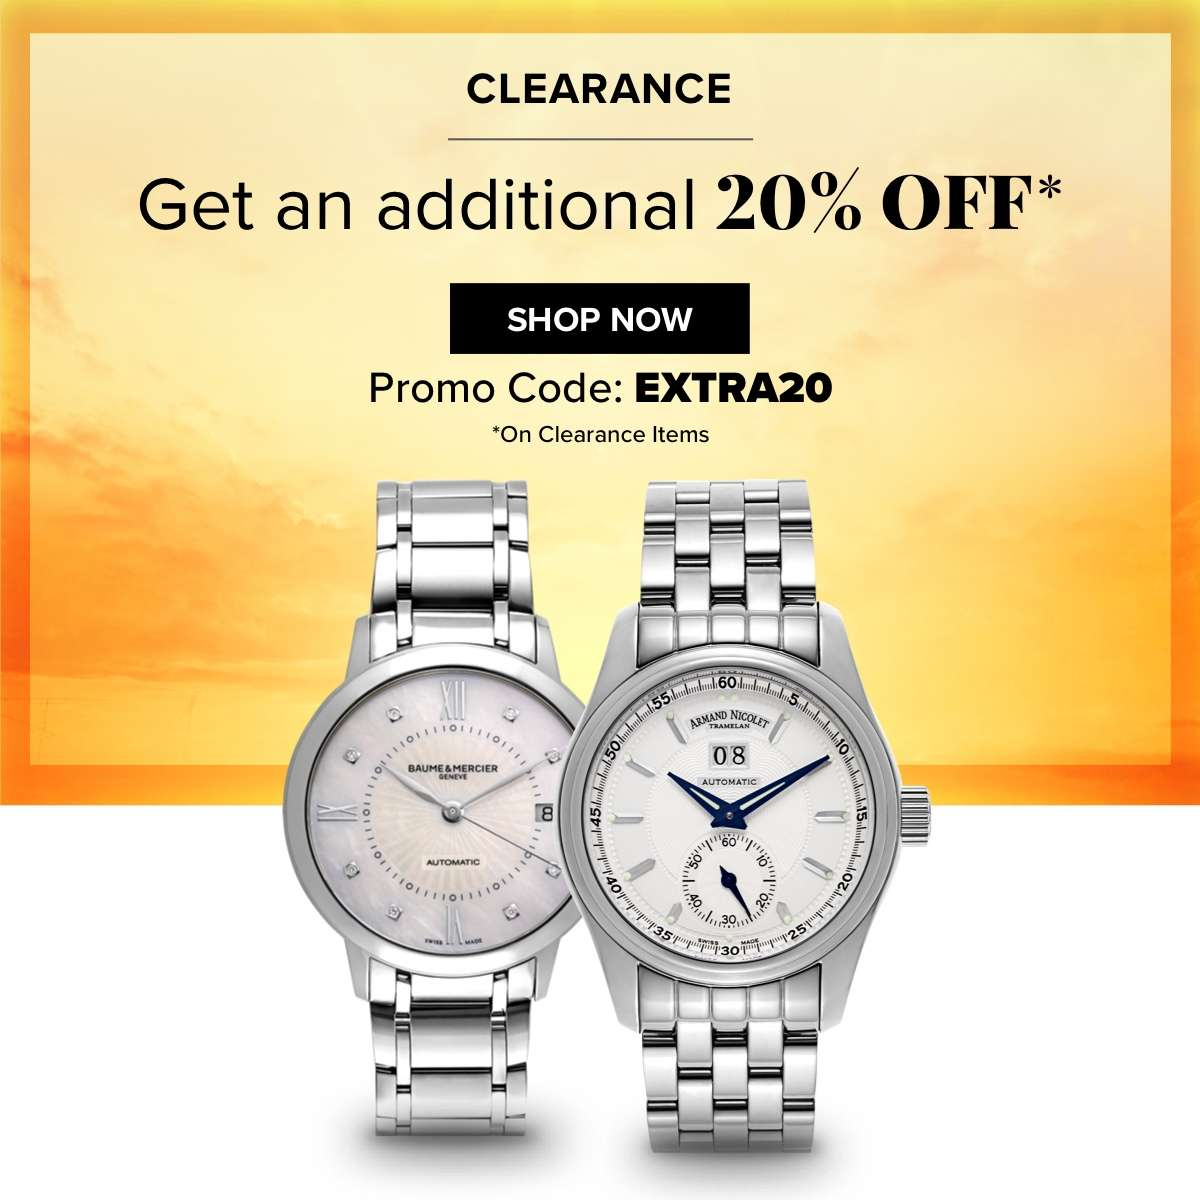 Save up to 86% + Get additional 20% off SHOP NOW Promo Code: EXTRA20